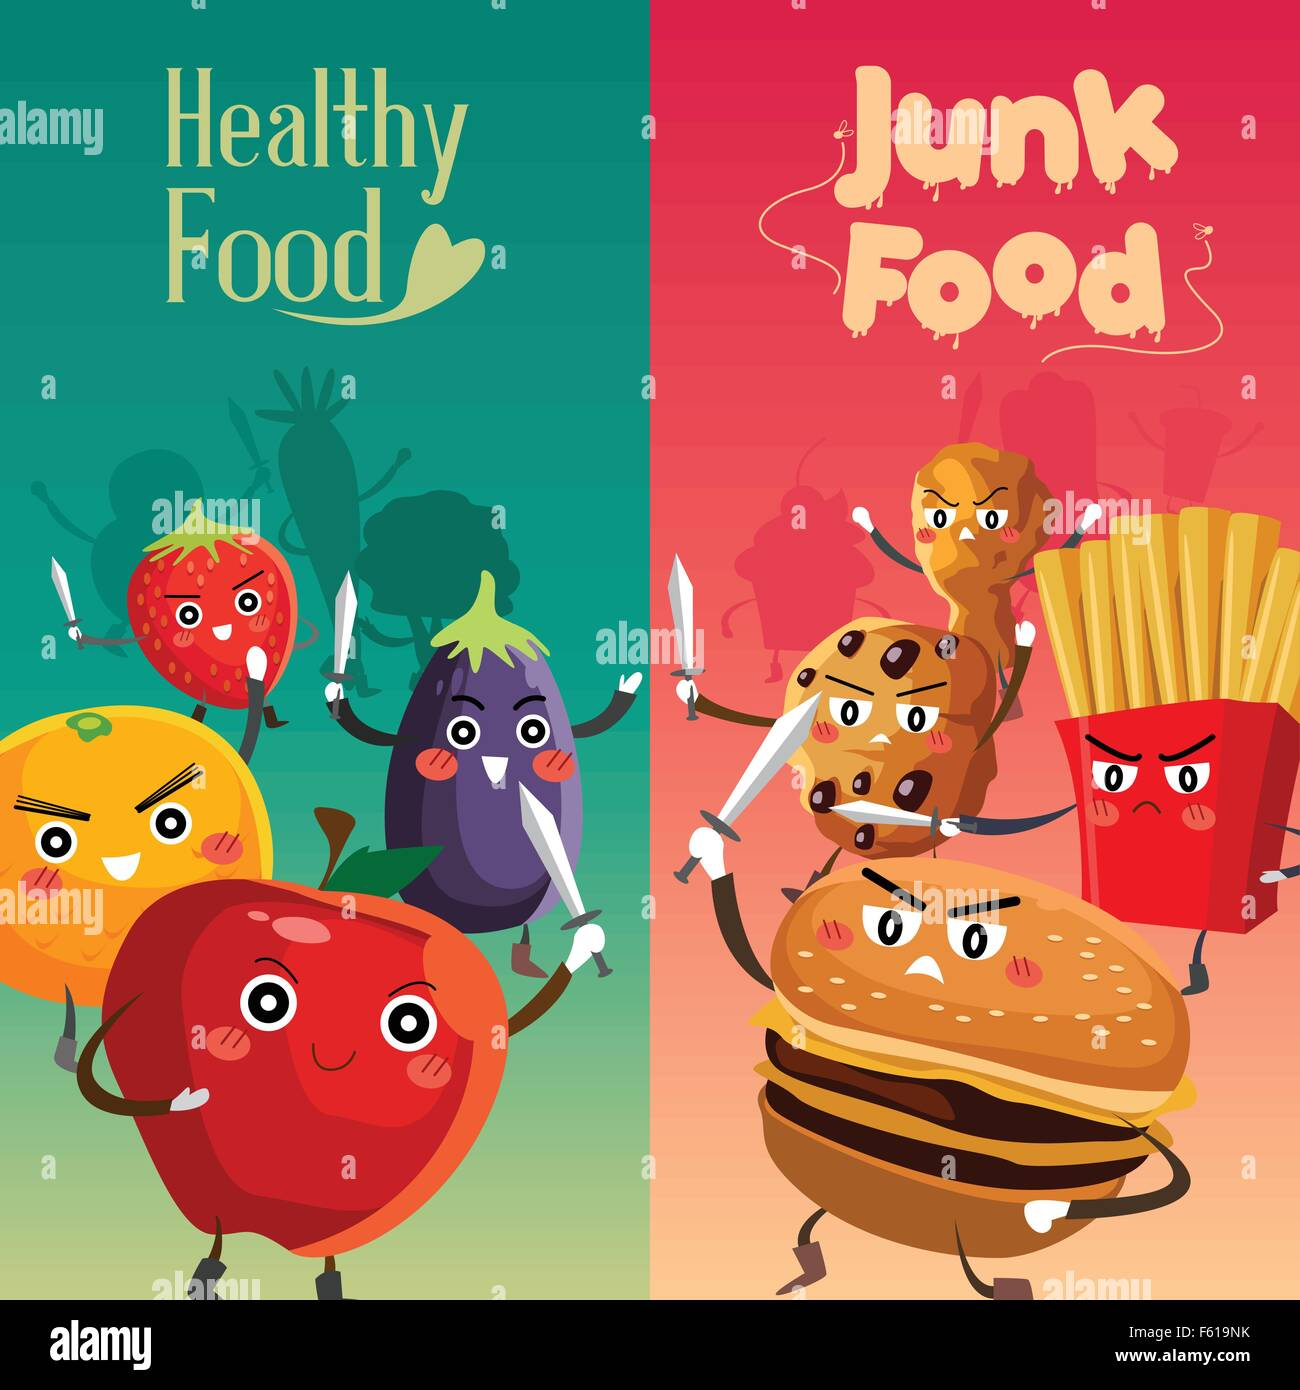 junk foods and healthy foods 17 healthy versions of your favorite junk foods that are actually worth buying.